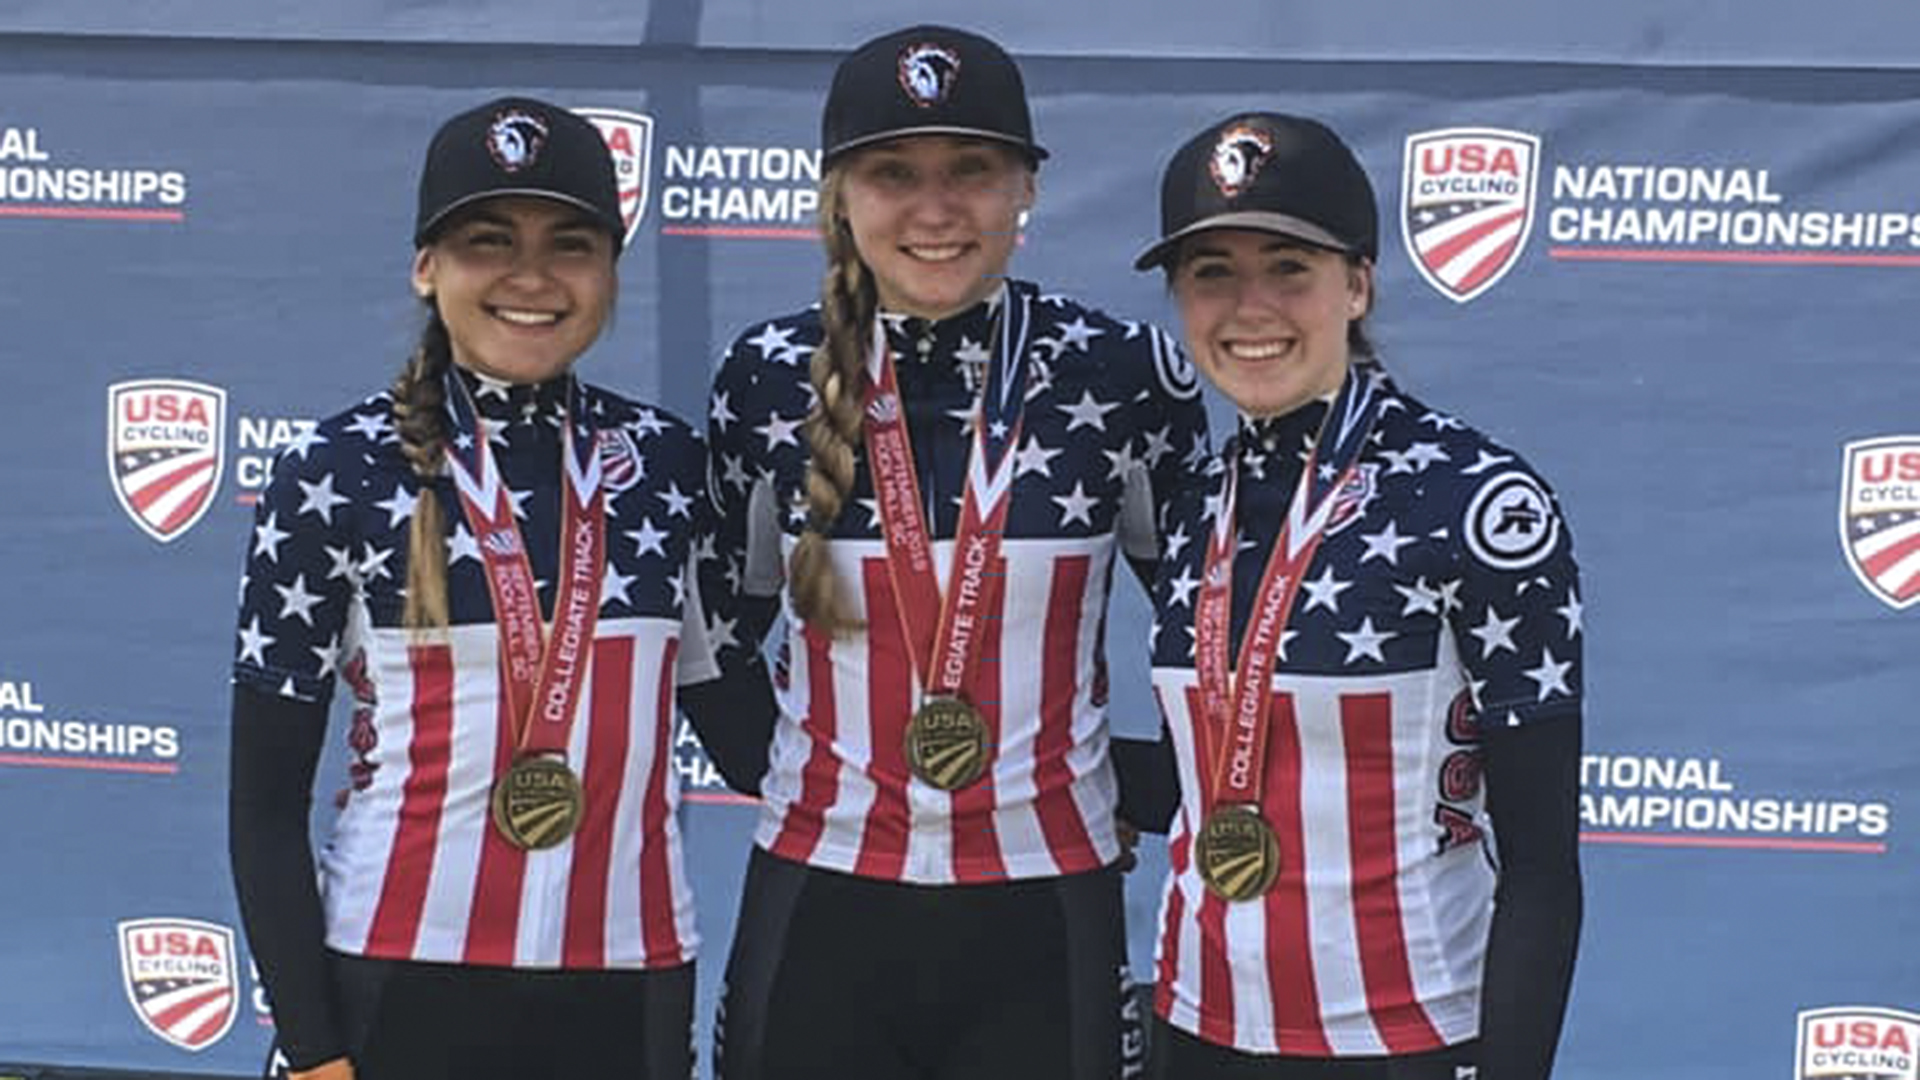 Cycling trio wins track national title